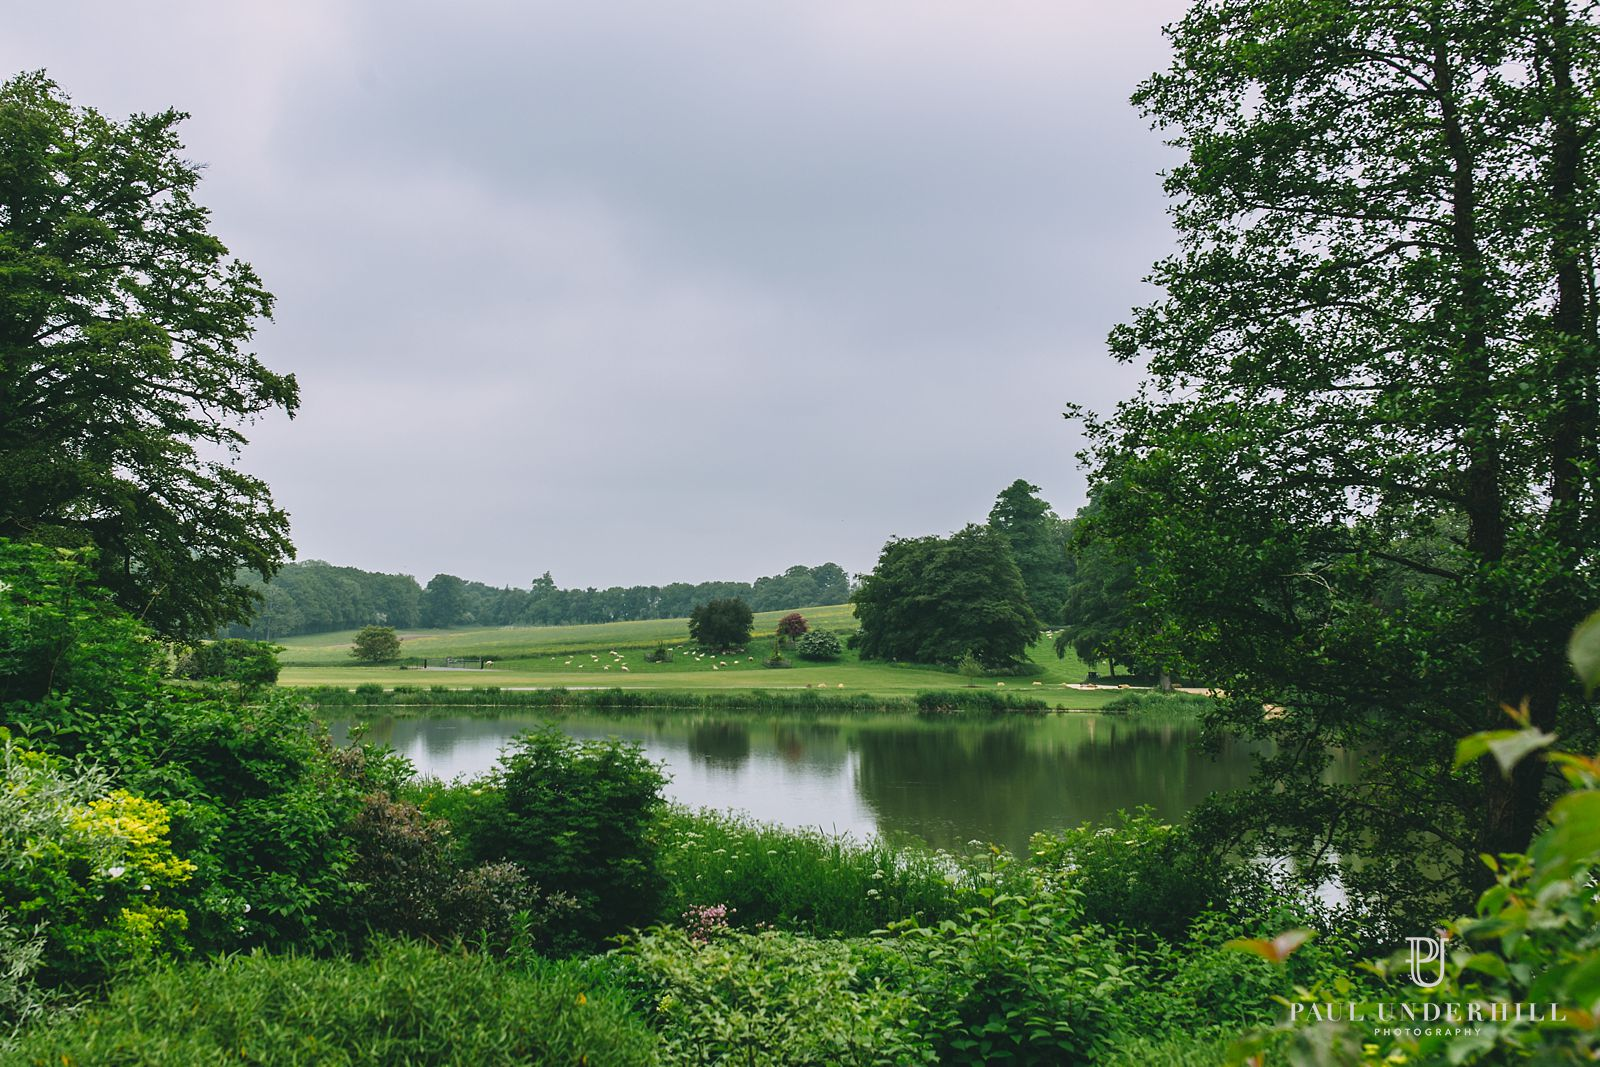 Views over Sherborne Castle lake